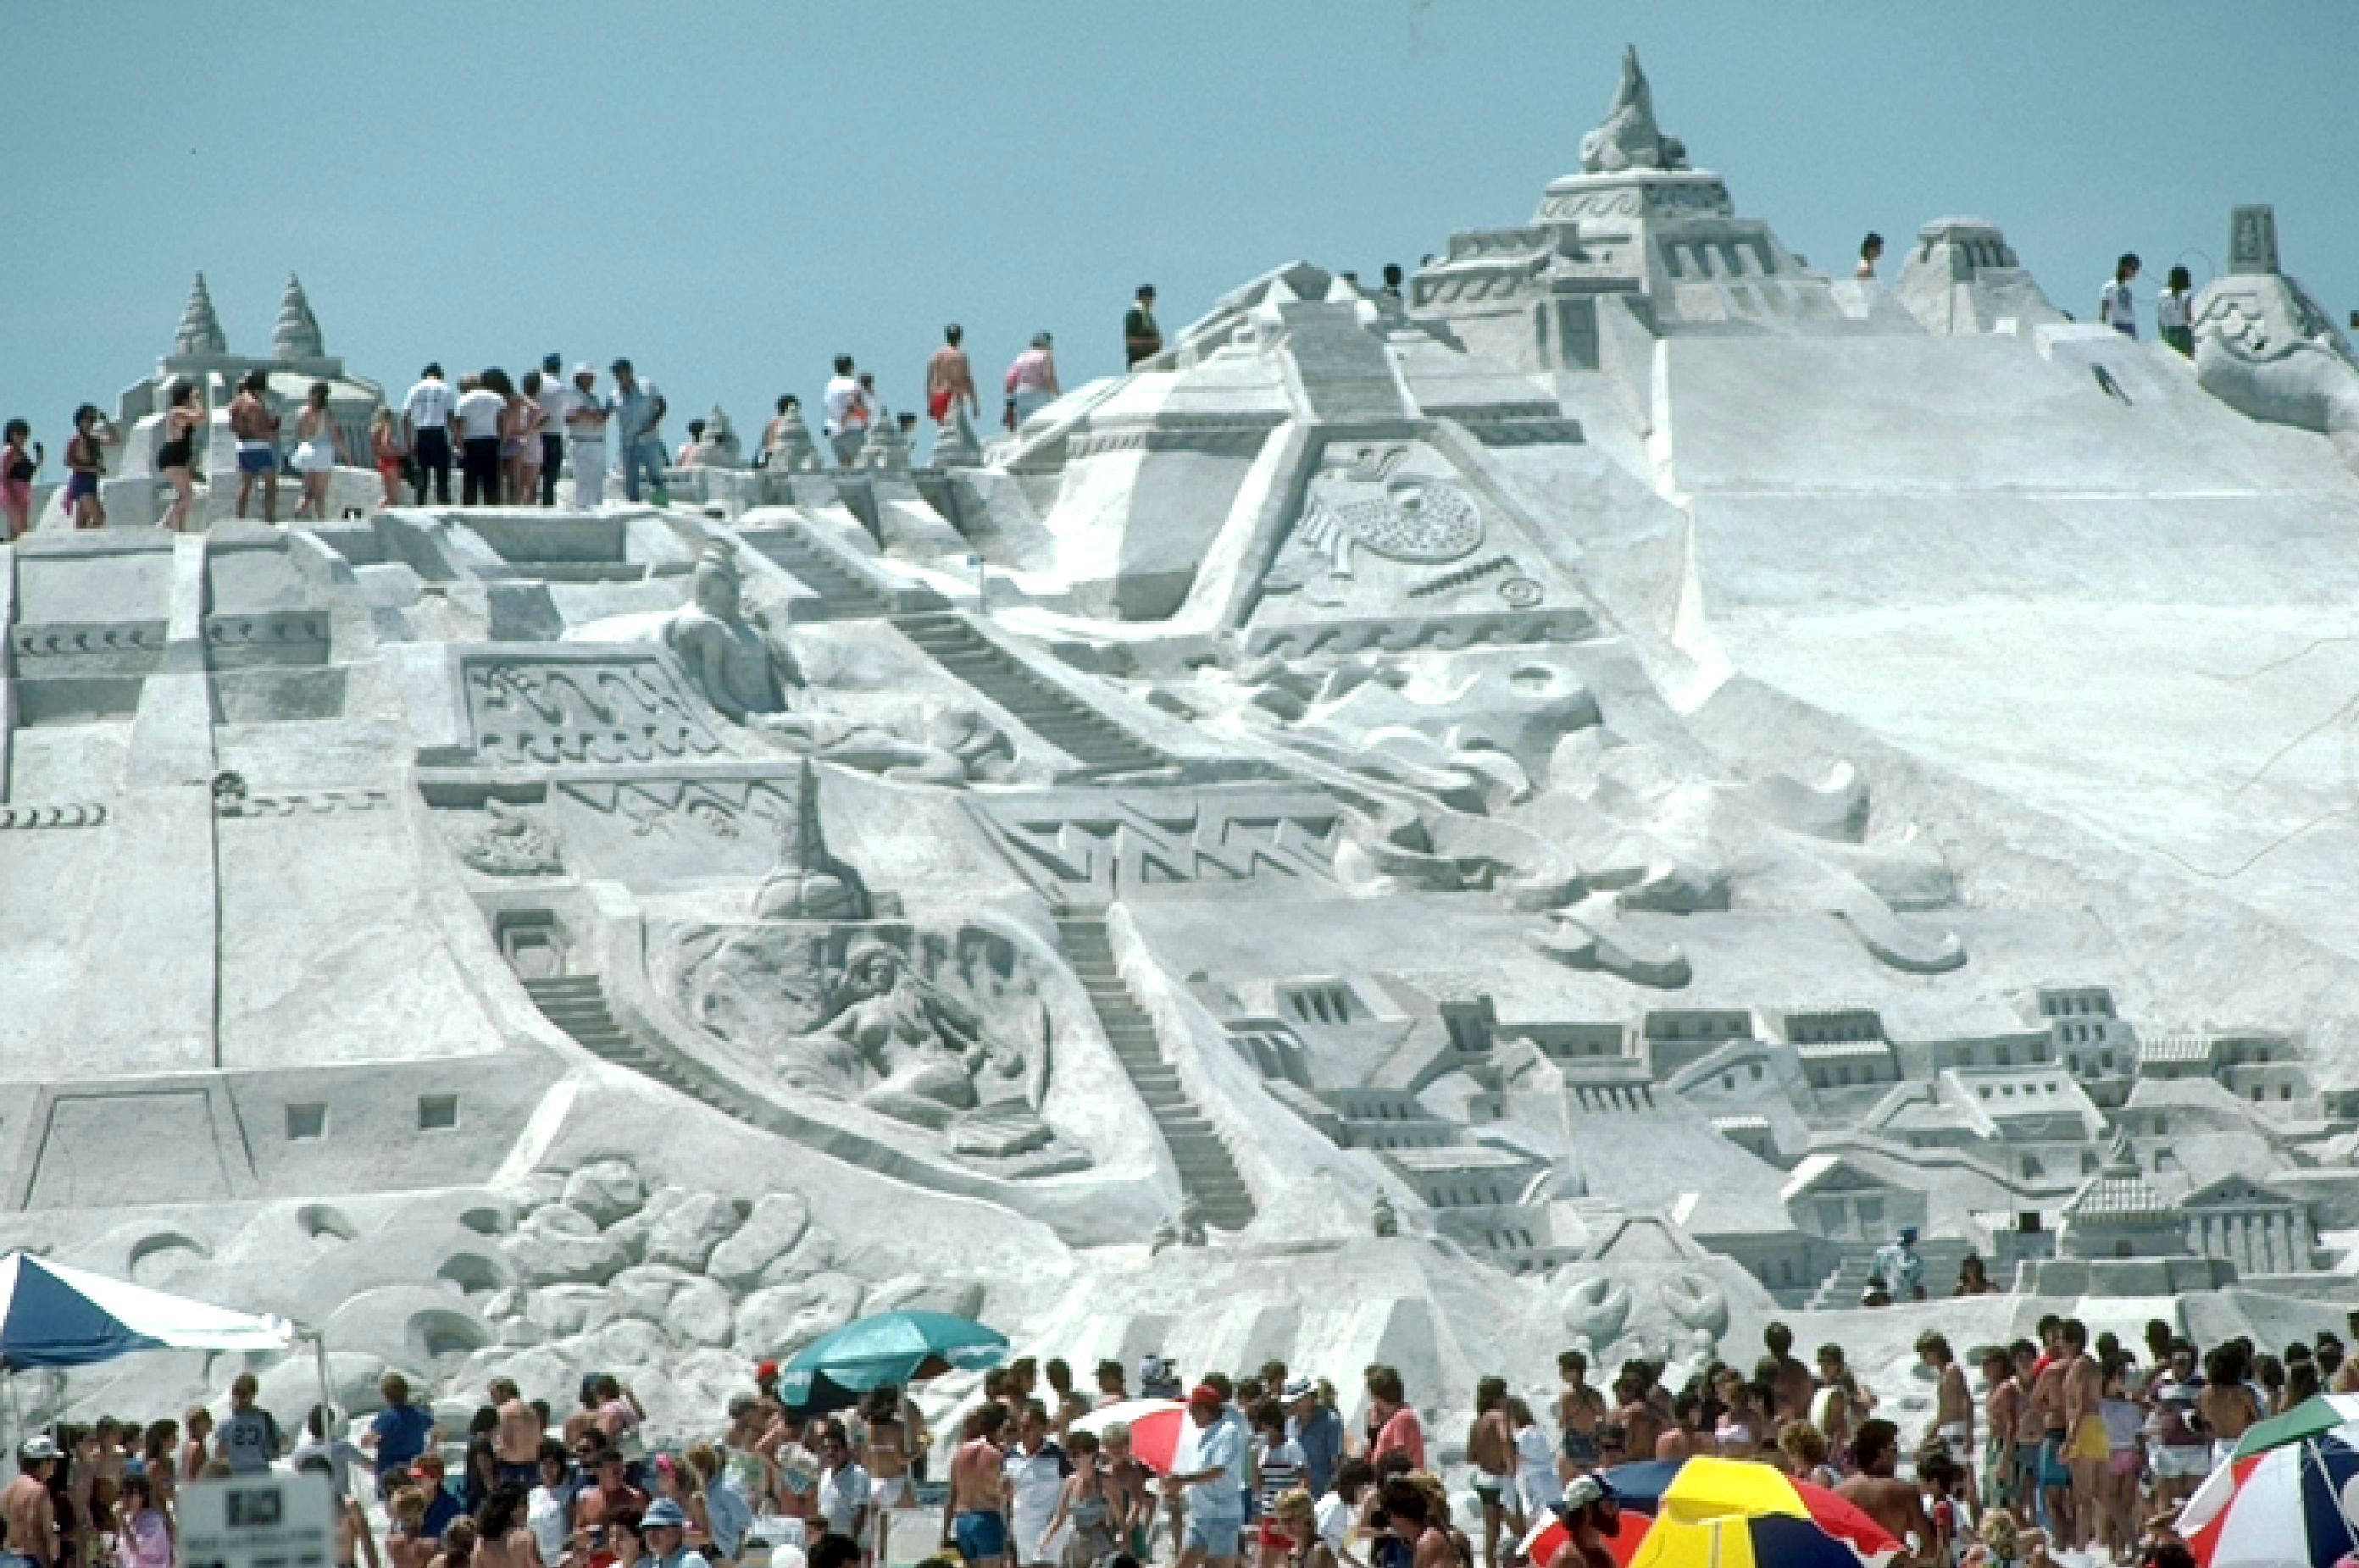 World's largest sand sculpture, USA 1981